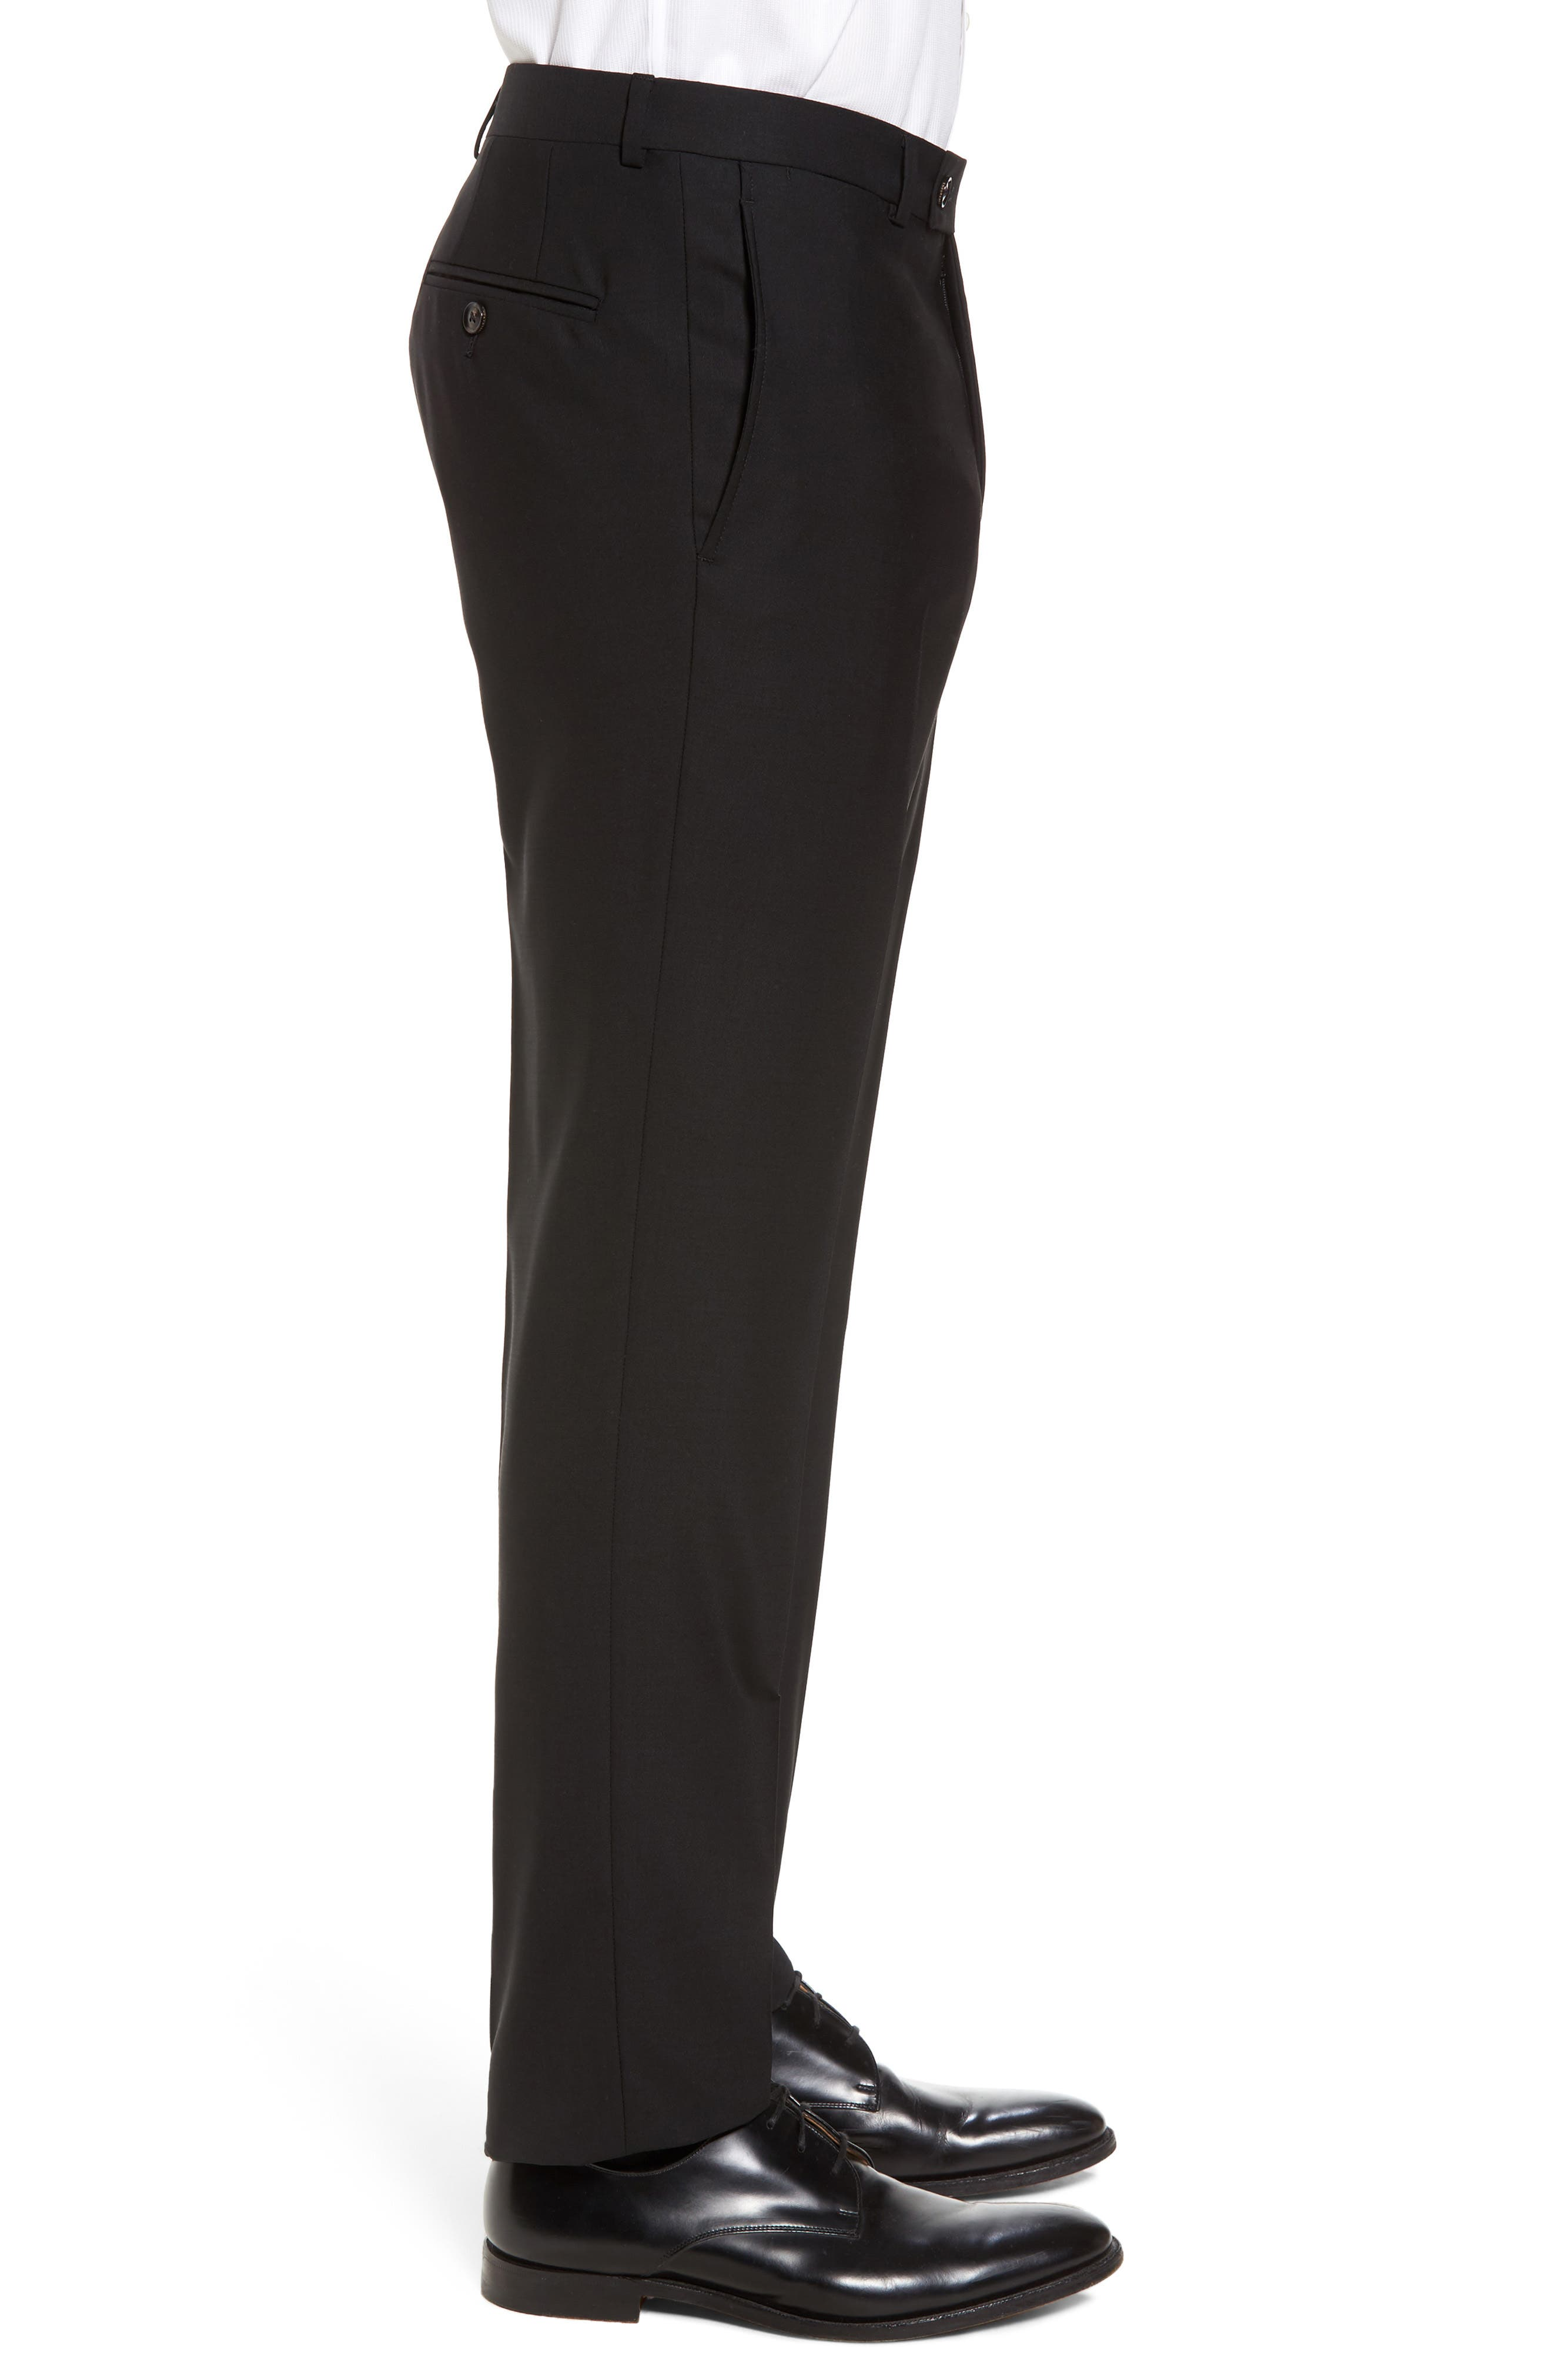 TED BAKER LONDON,                             Jefferson Flat Front Solid Wool Trousers,                             Alternate thumbnail 4, color,                             BLACK